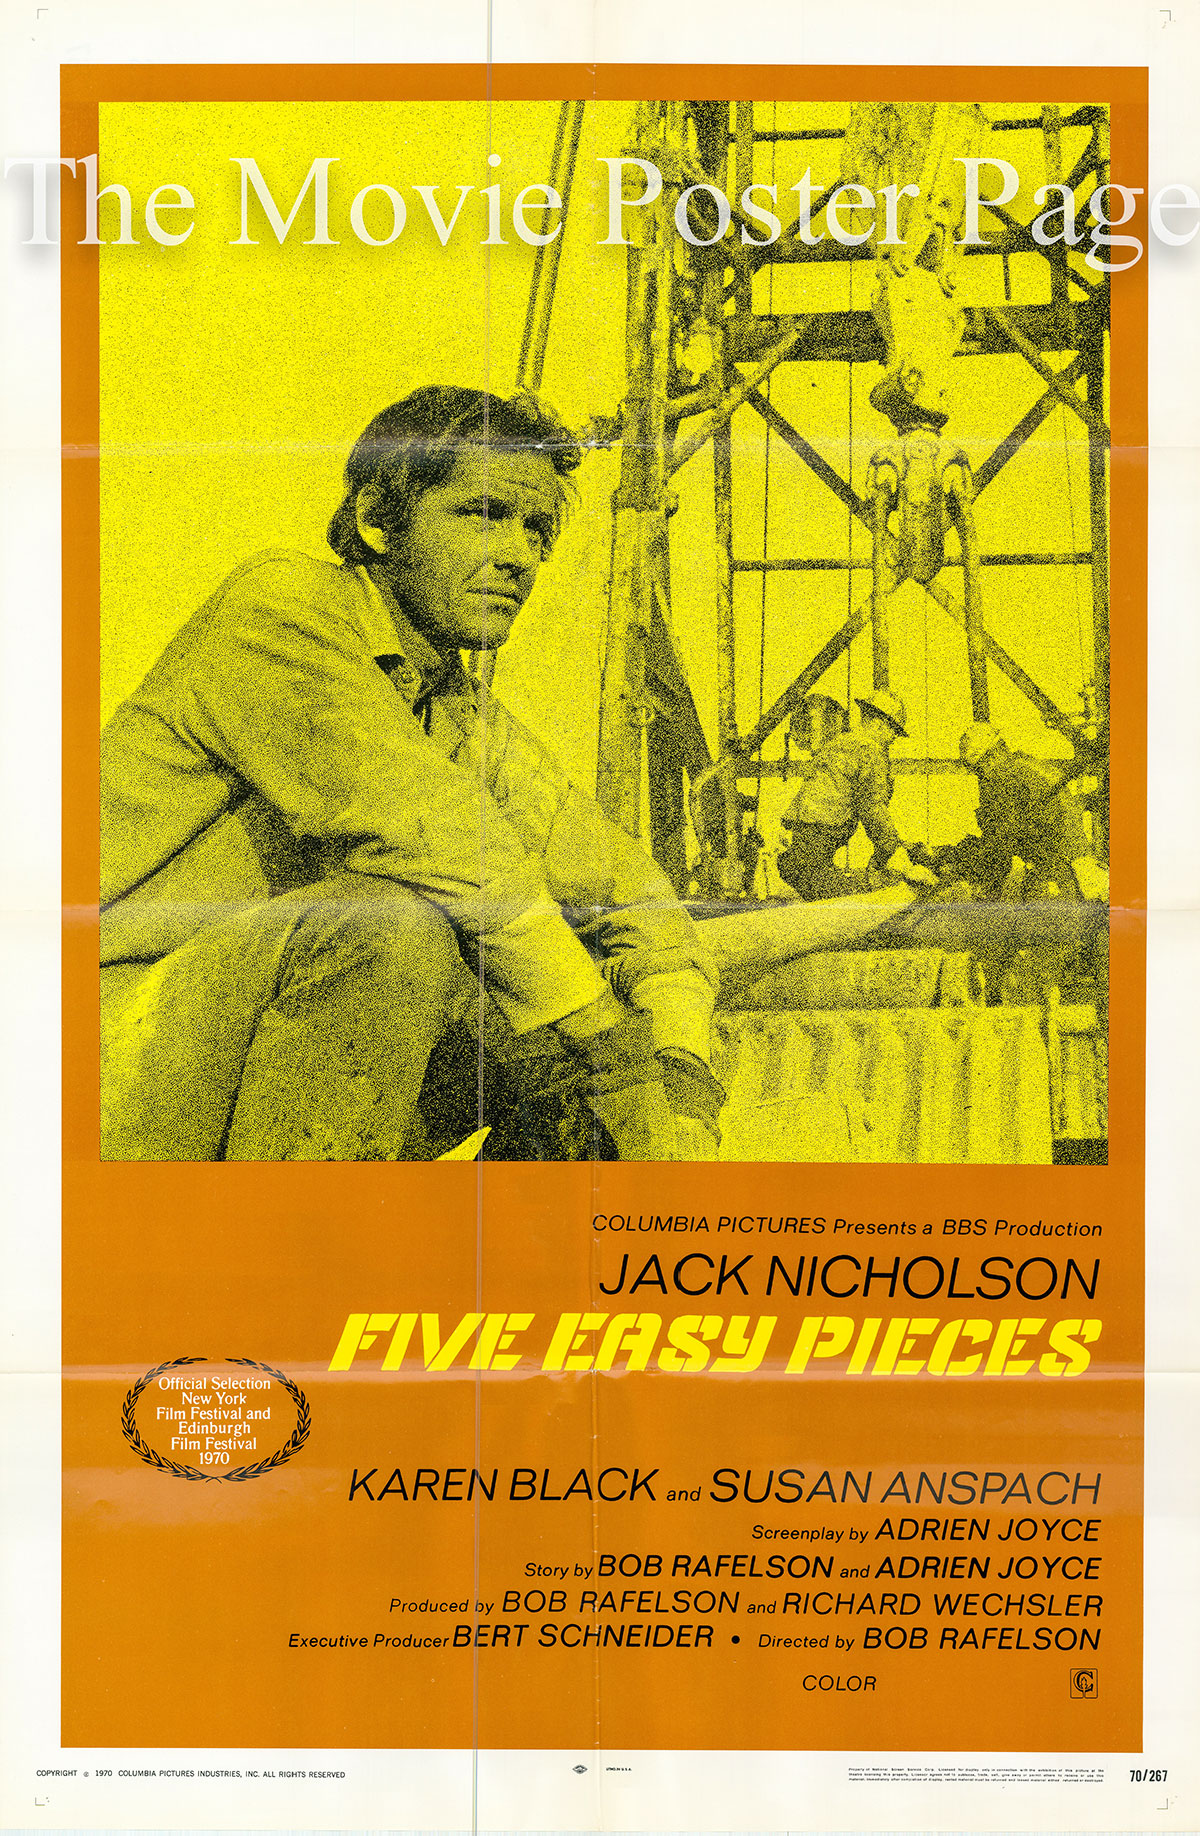 Pictured is a US one-sheet promotional poster for the 1970 Bob Rafelson film Five Easy Pieces starring Jack Nicholson.